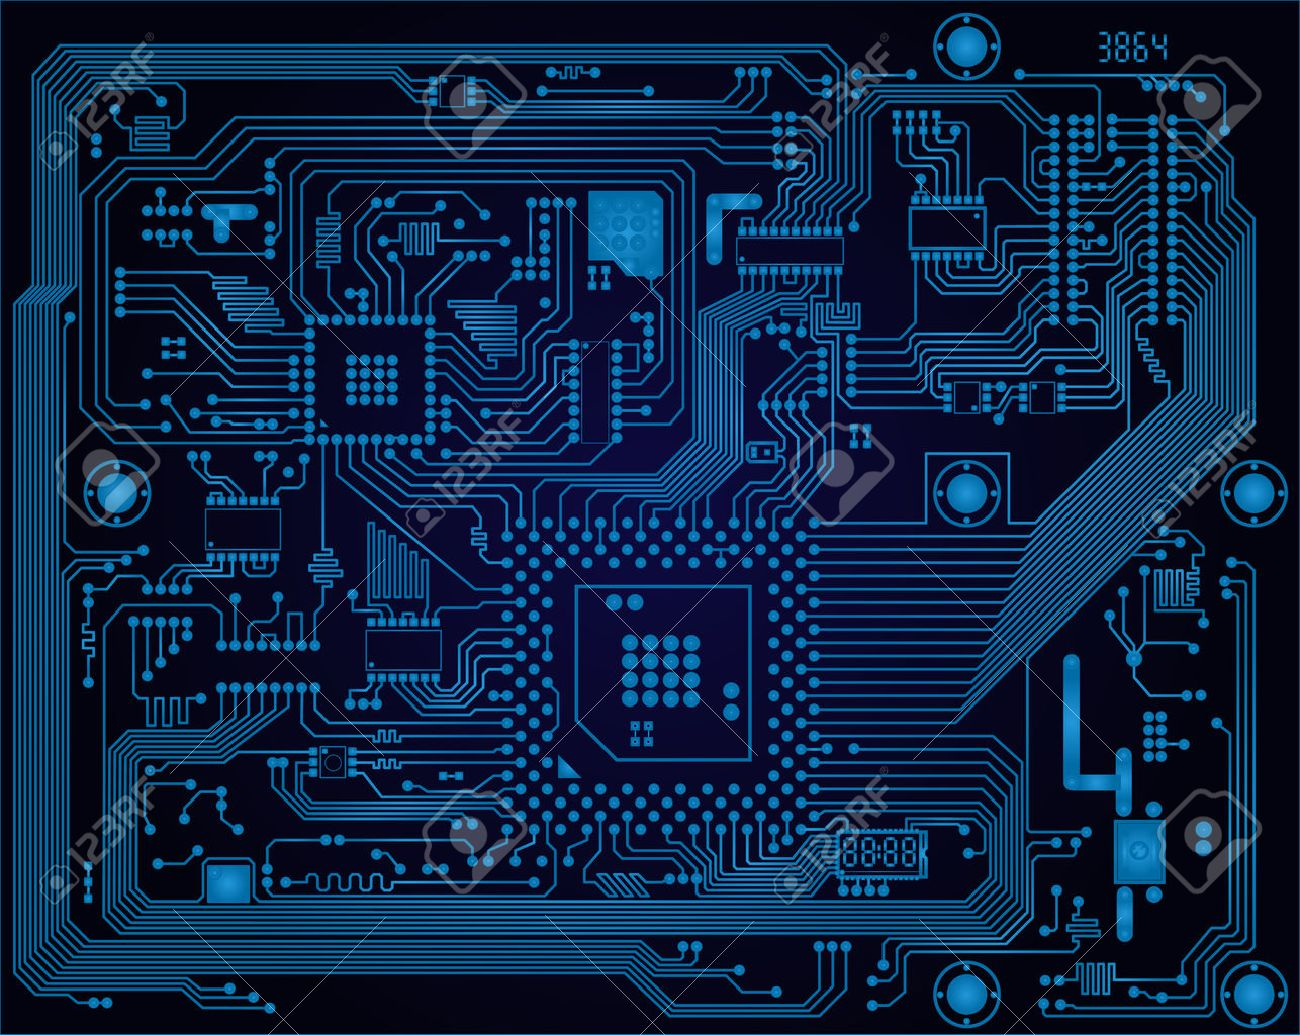 Hi-tech dark blue industrial electronic circuit board vector abstract background - 22386824